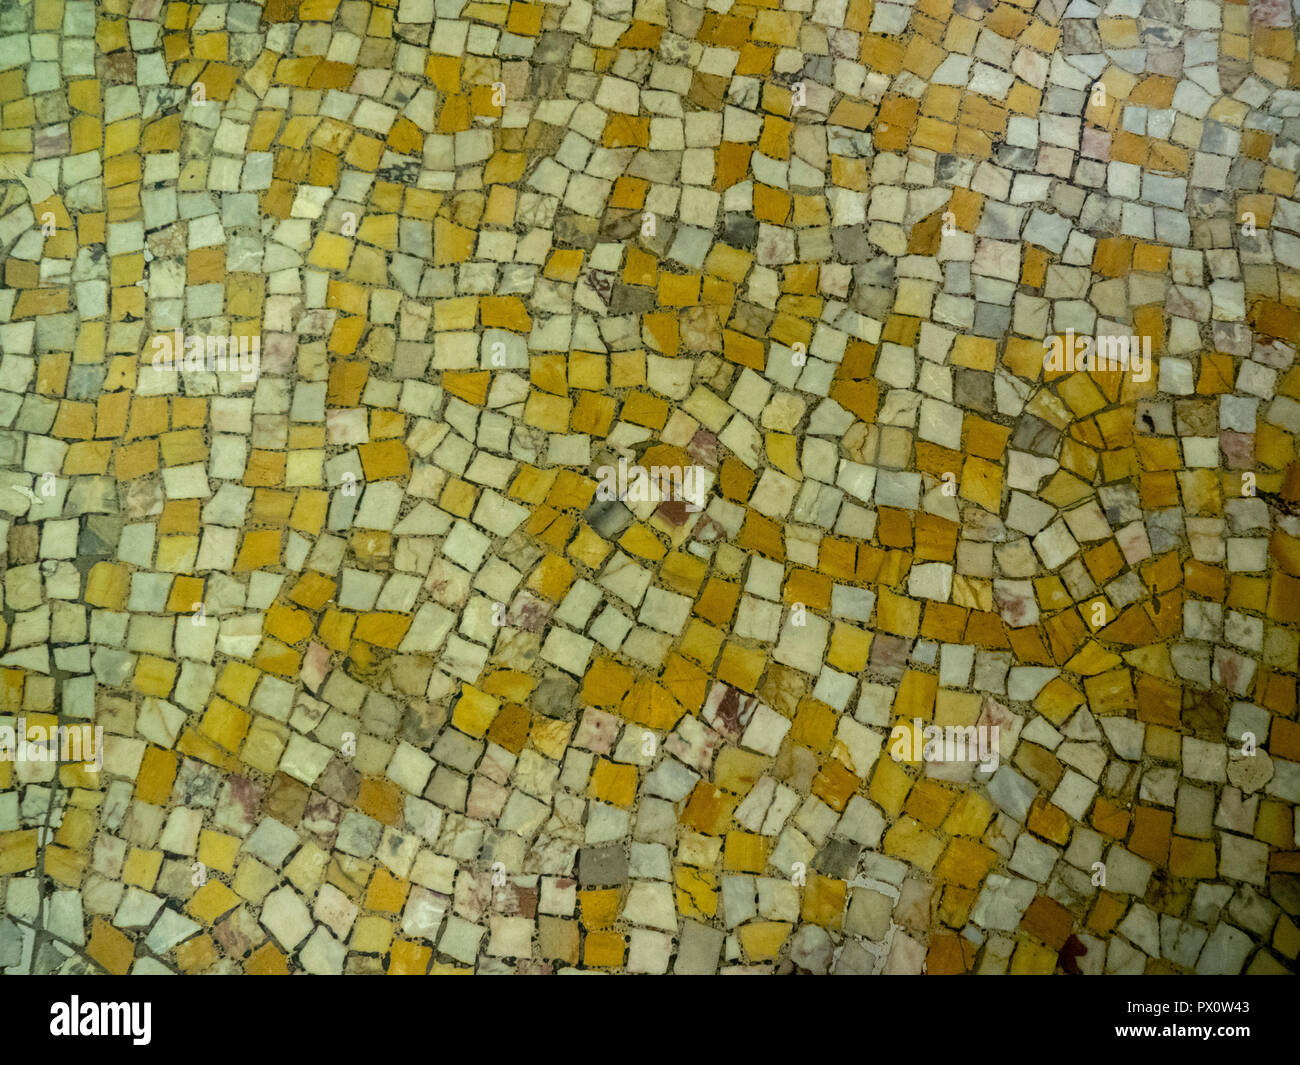 Tessellated Floor Stock Photos Tessellated Floor Stock Images Alamy